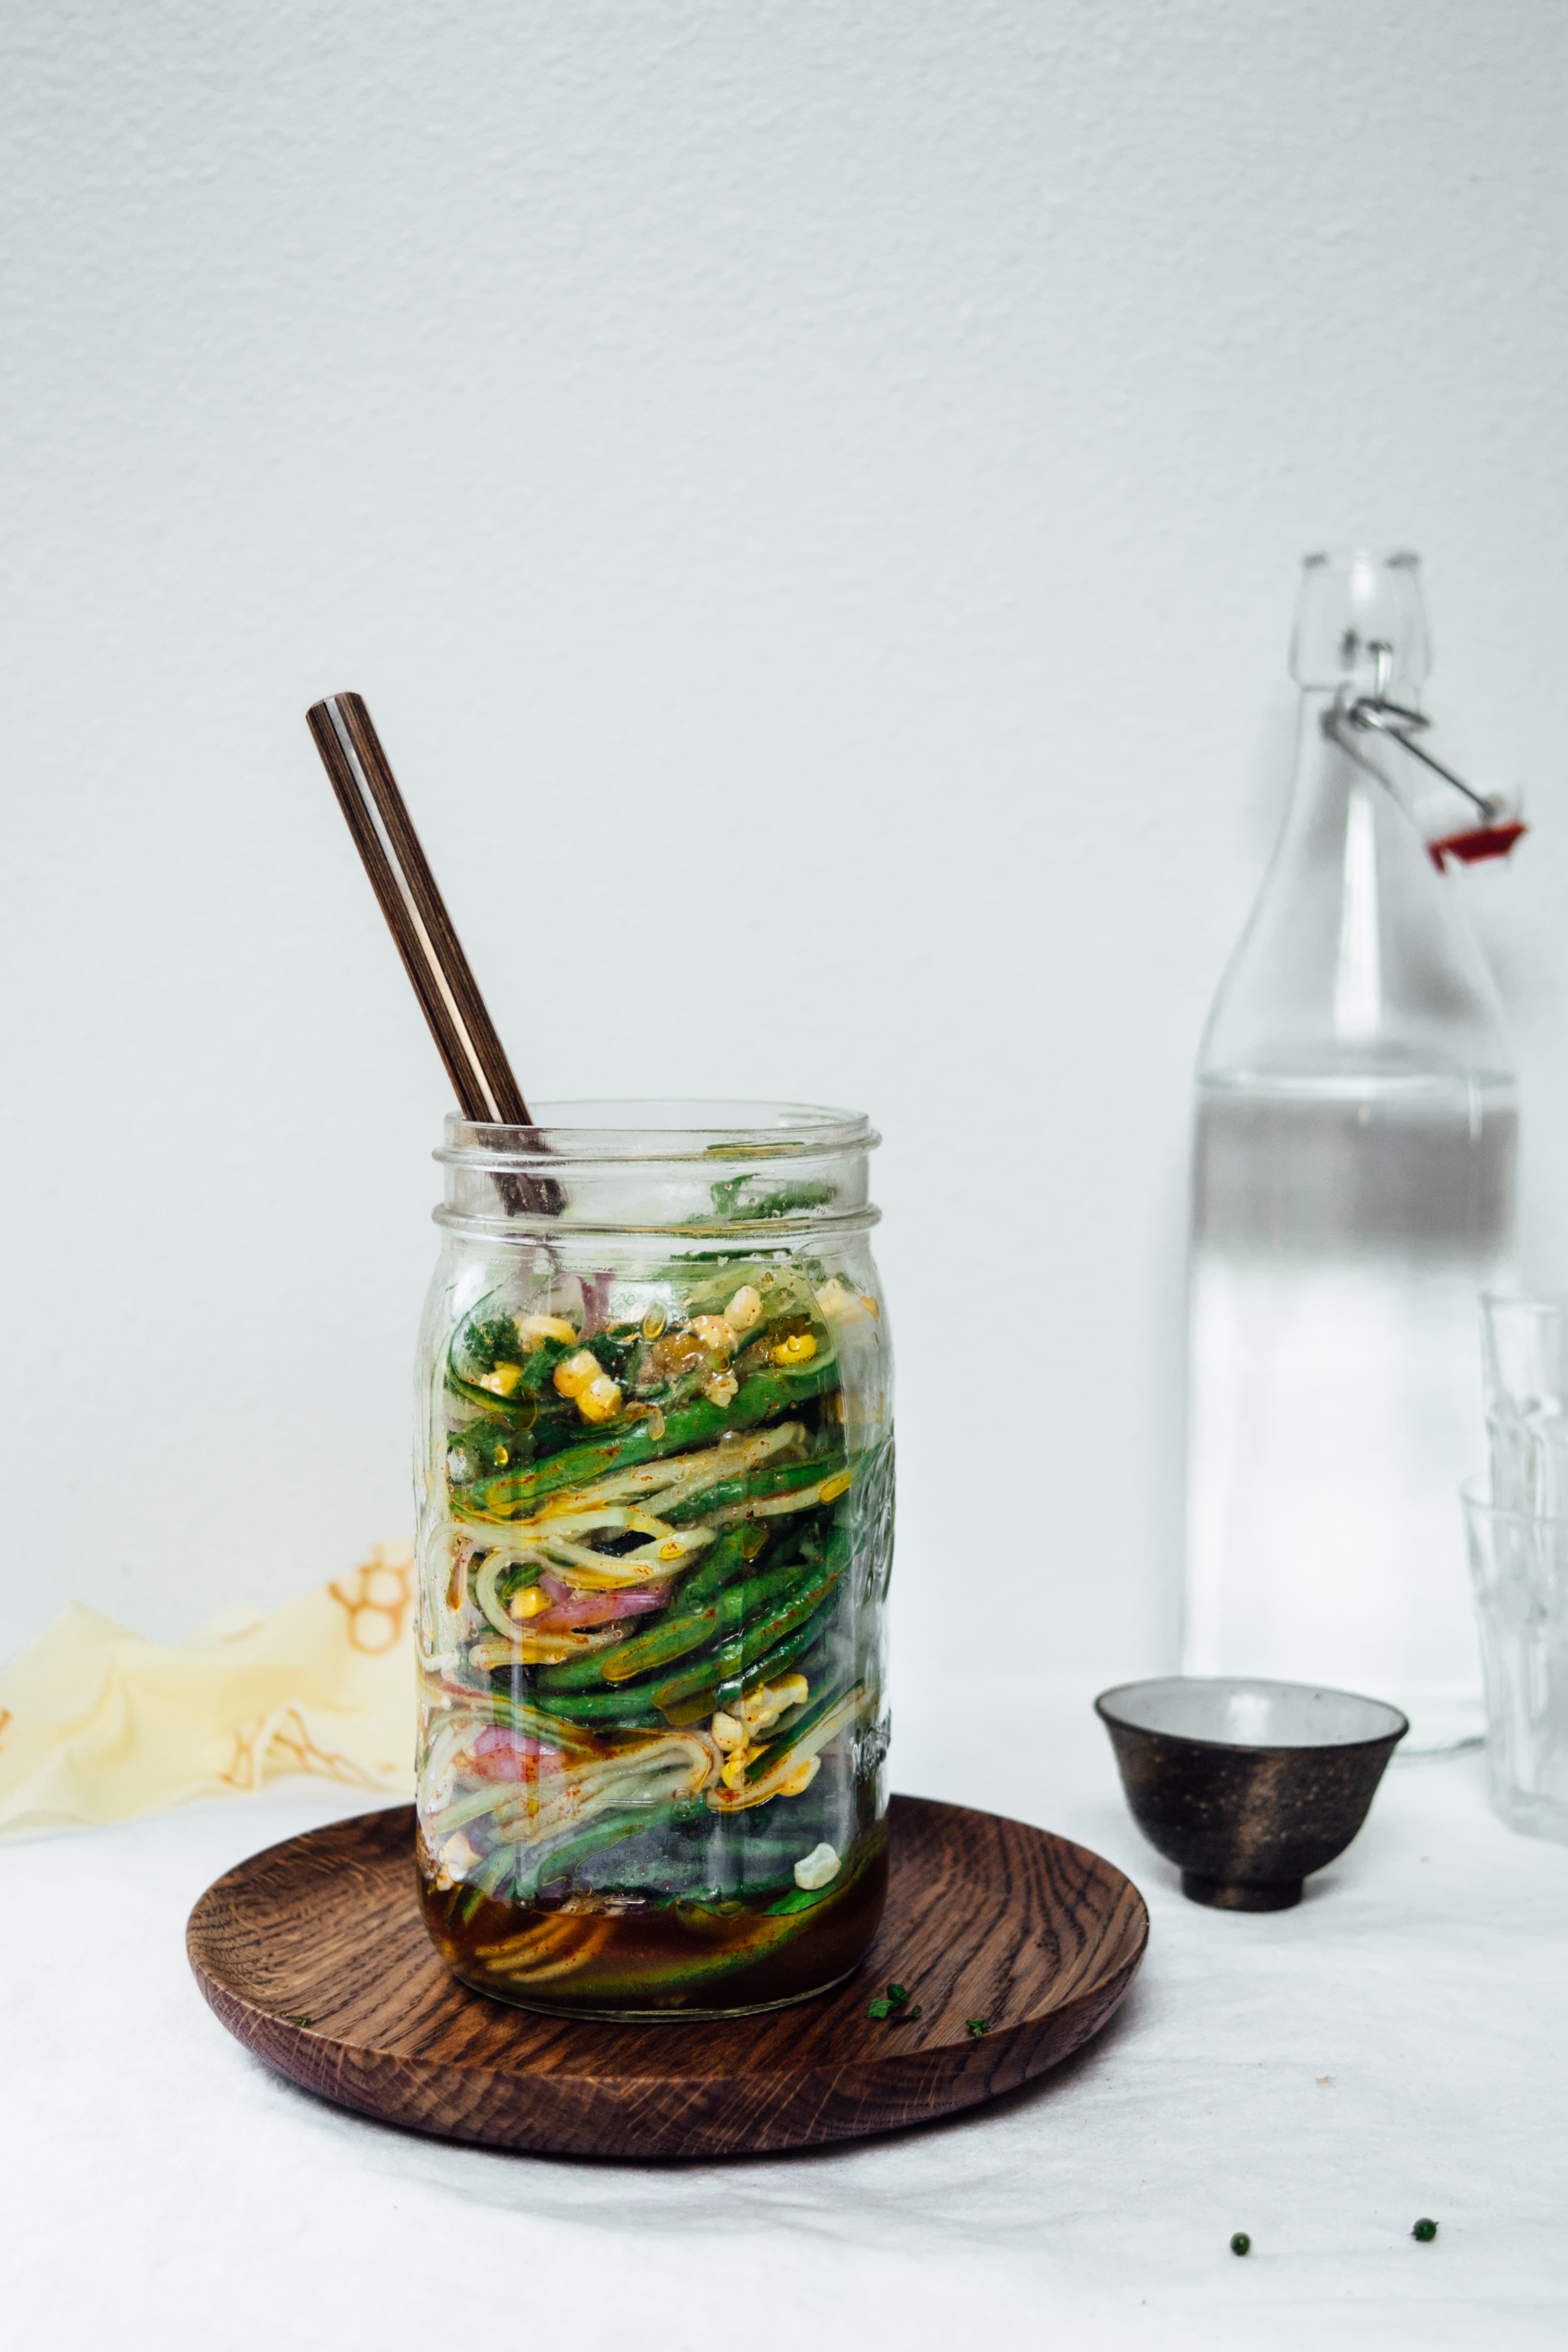 Summer Salad with Roasted Corn and Chili | TENDING the TABLE